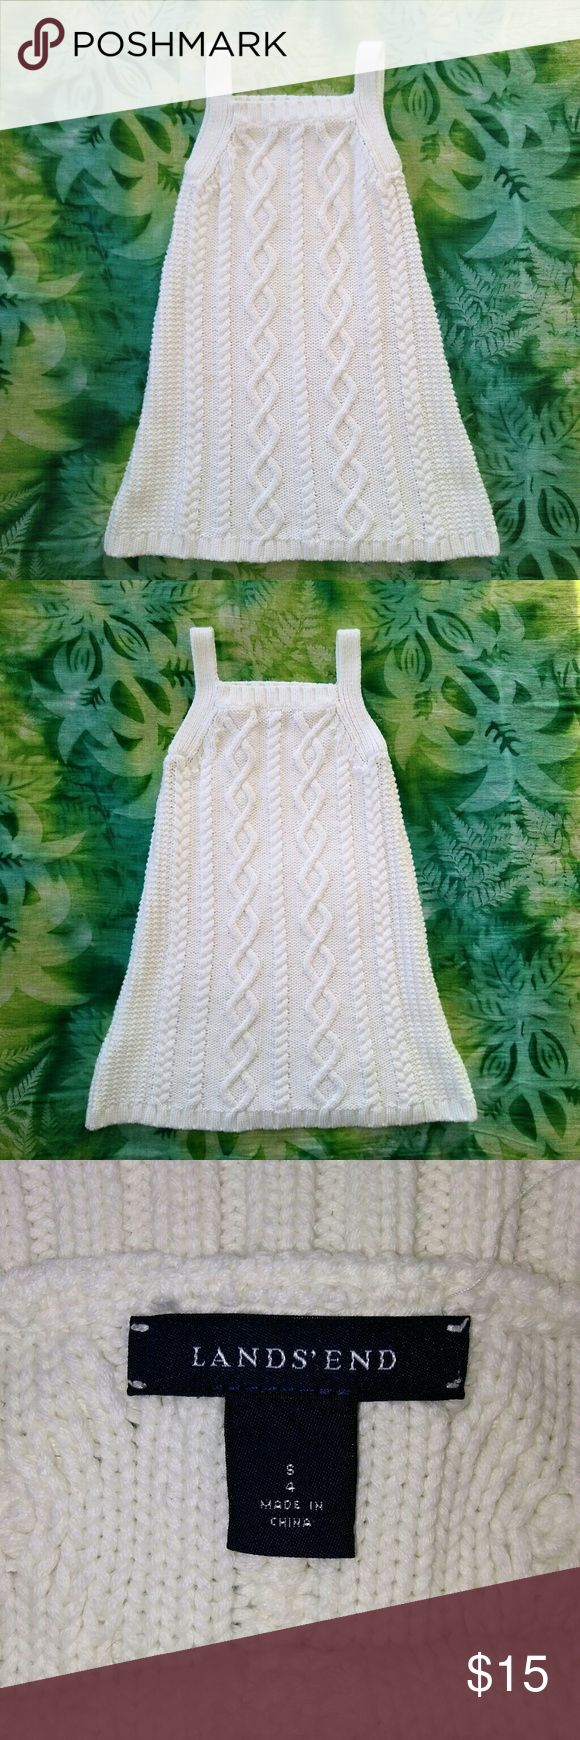 LAND 'S End Cable Knit Tank Top 100% Cotton White Sweater Cable Knit Tank Top Shirt. Pristine White Clean!  Women's Small. In excellent used condition. From a smoke free home. Make an offer! Lands' End Tops